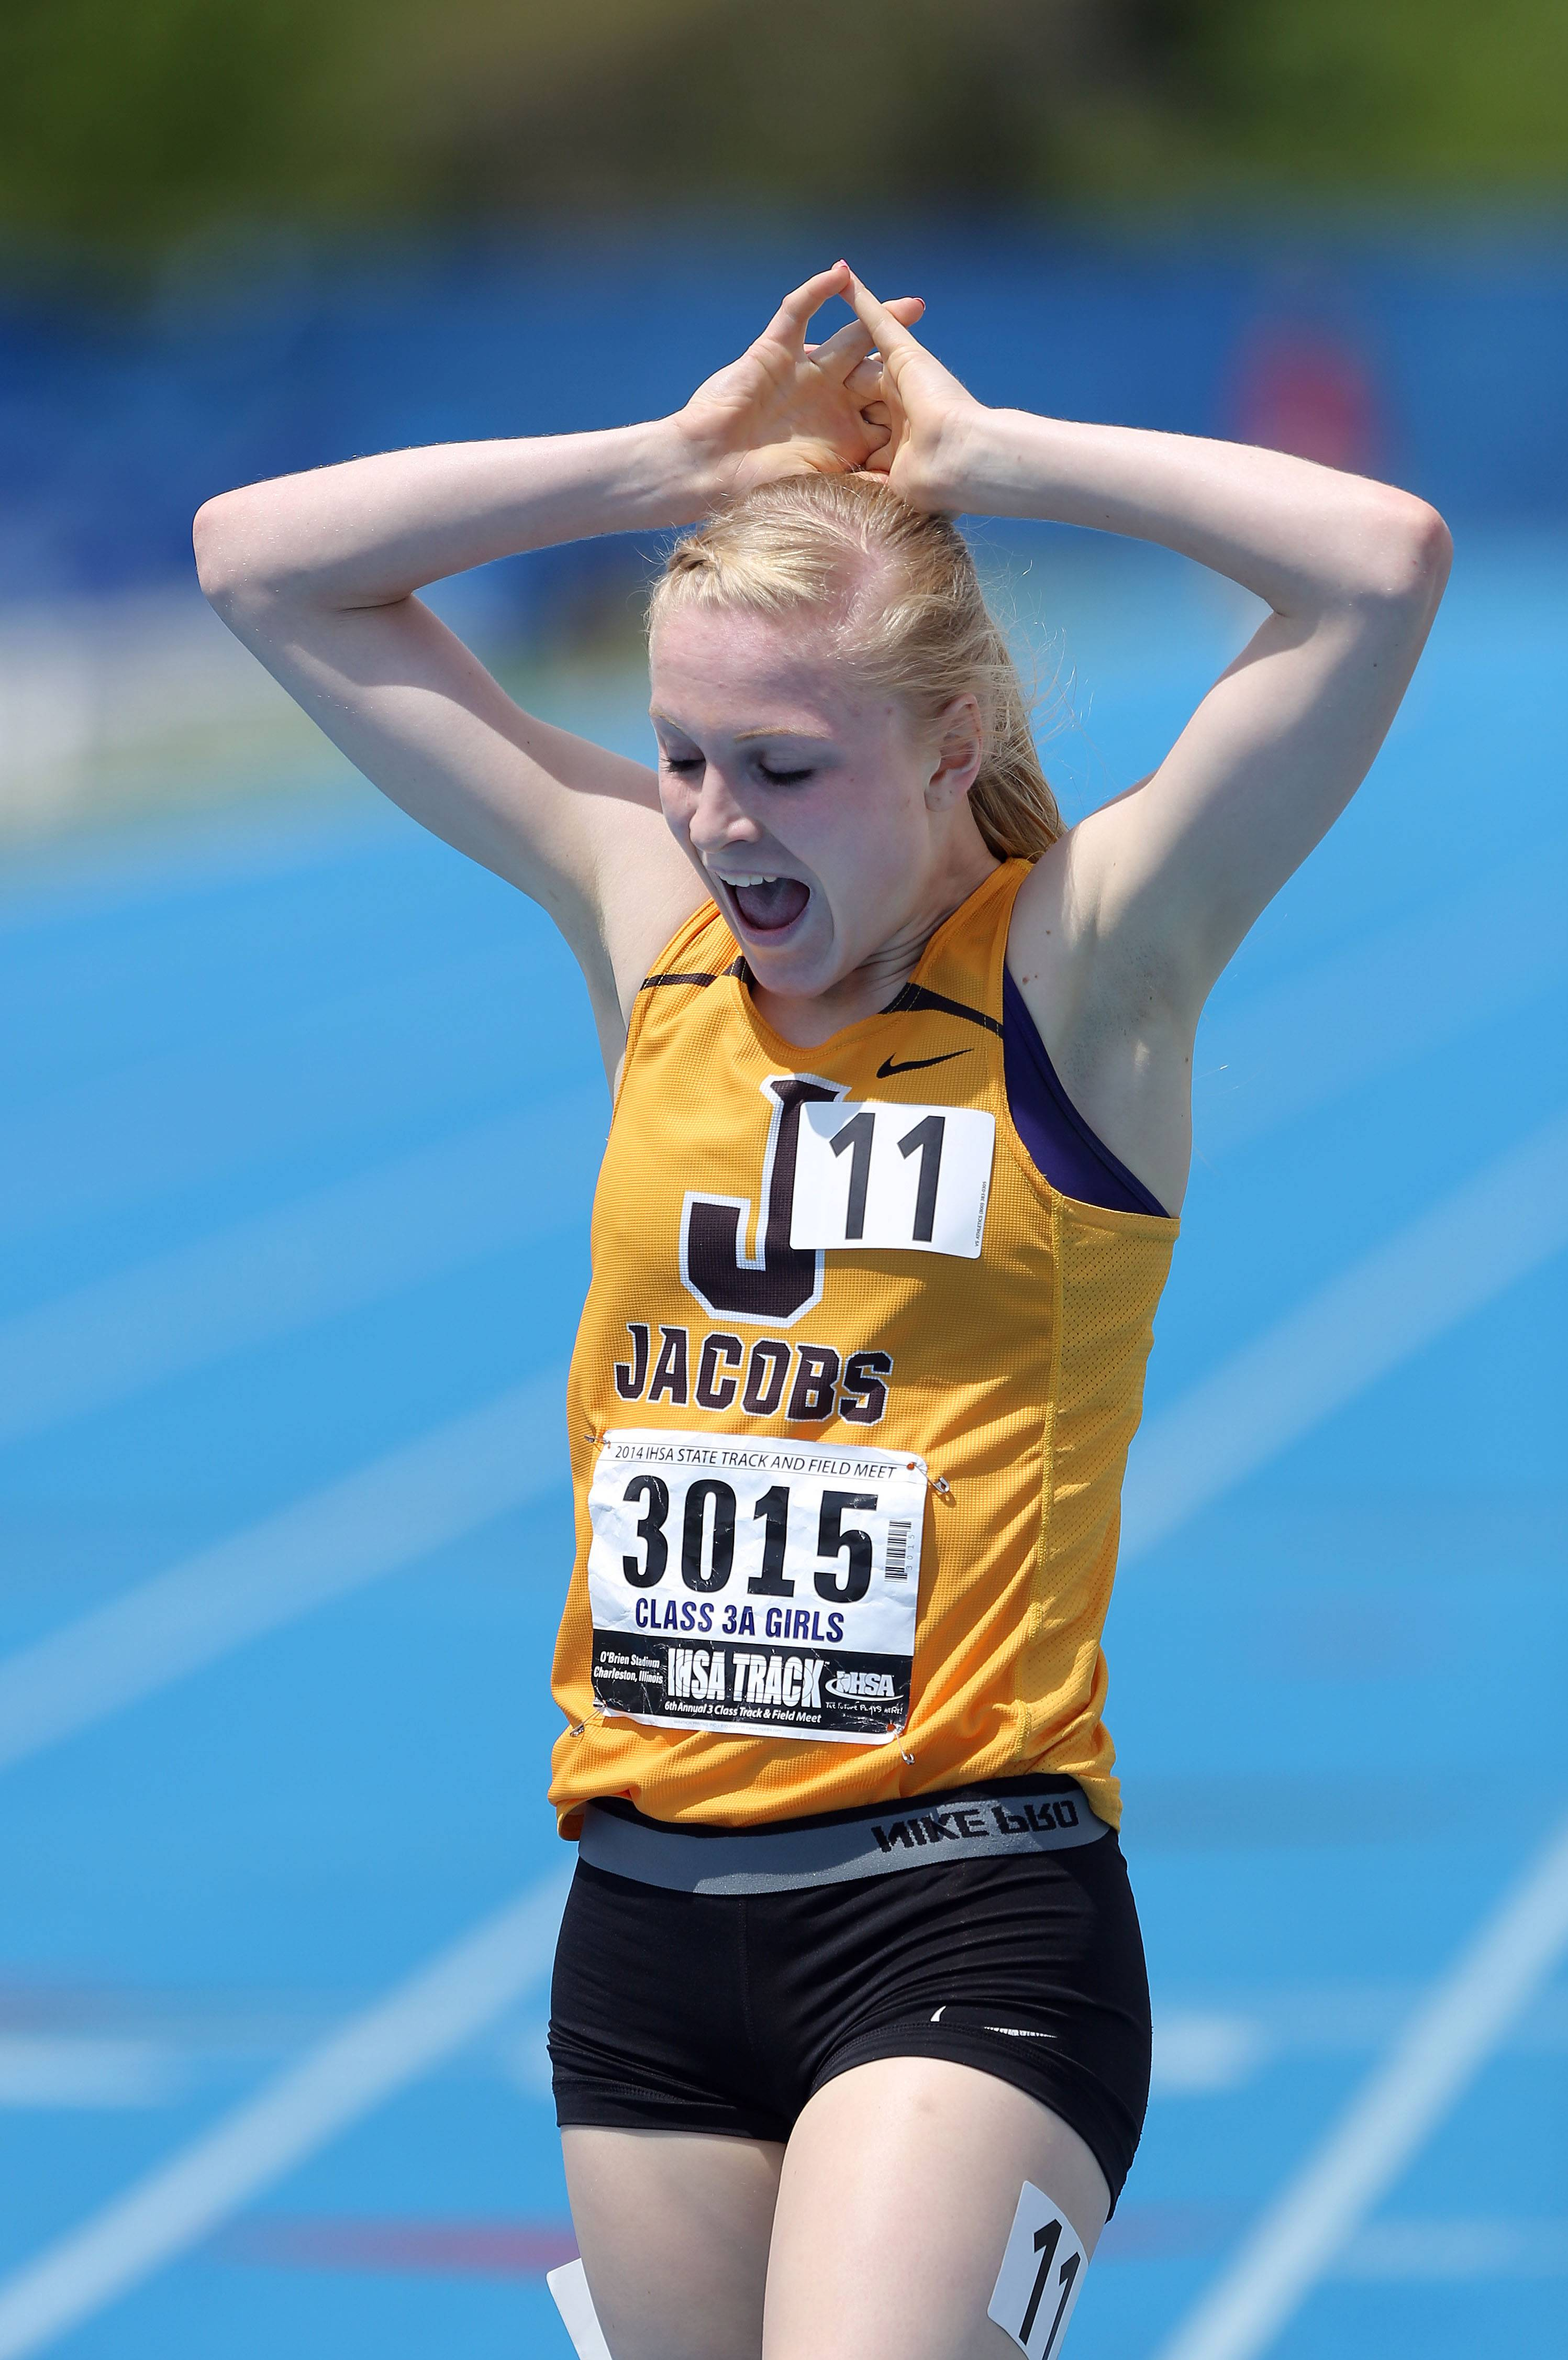 Jacobs' Lauren Van Vlierbergen reacts after winning the Class 3A 800-meter run during the girls track and field state finals at Eastern Illinois University in Charleston Saturday.